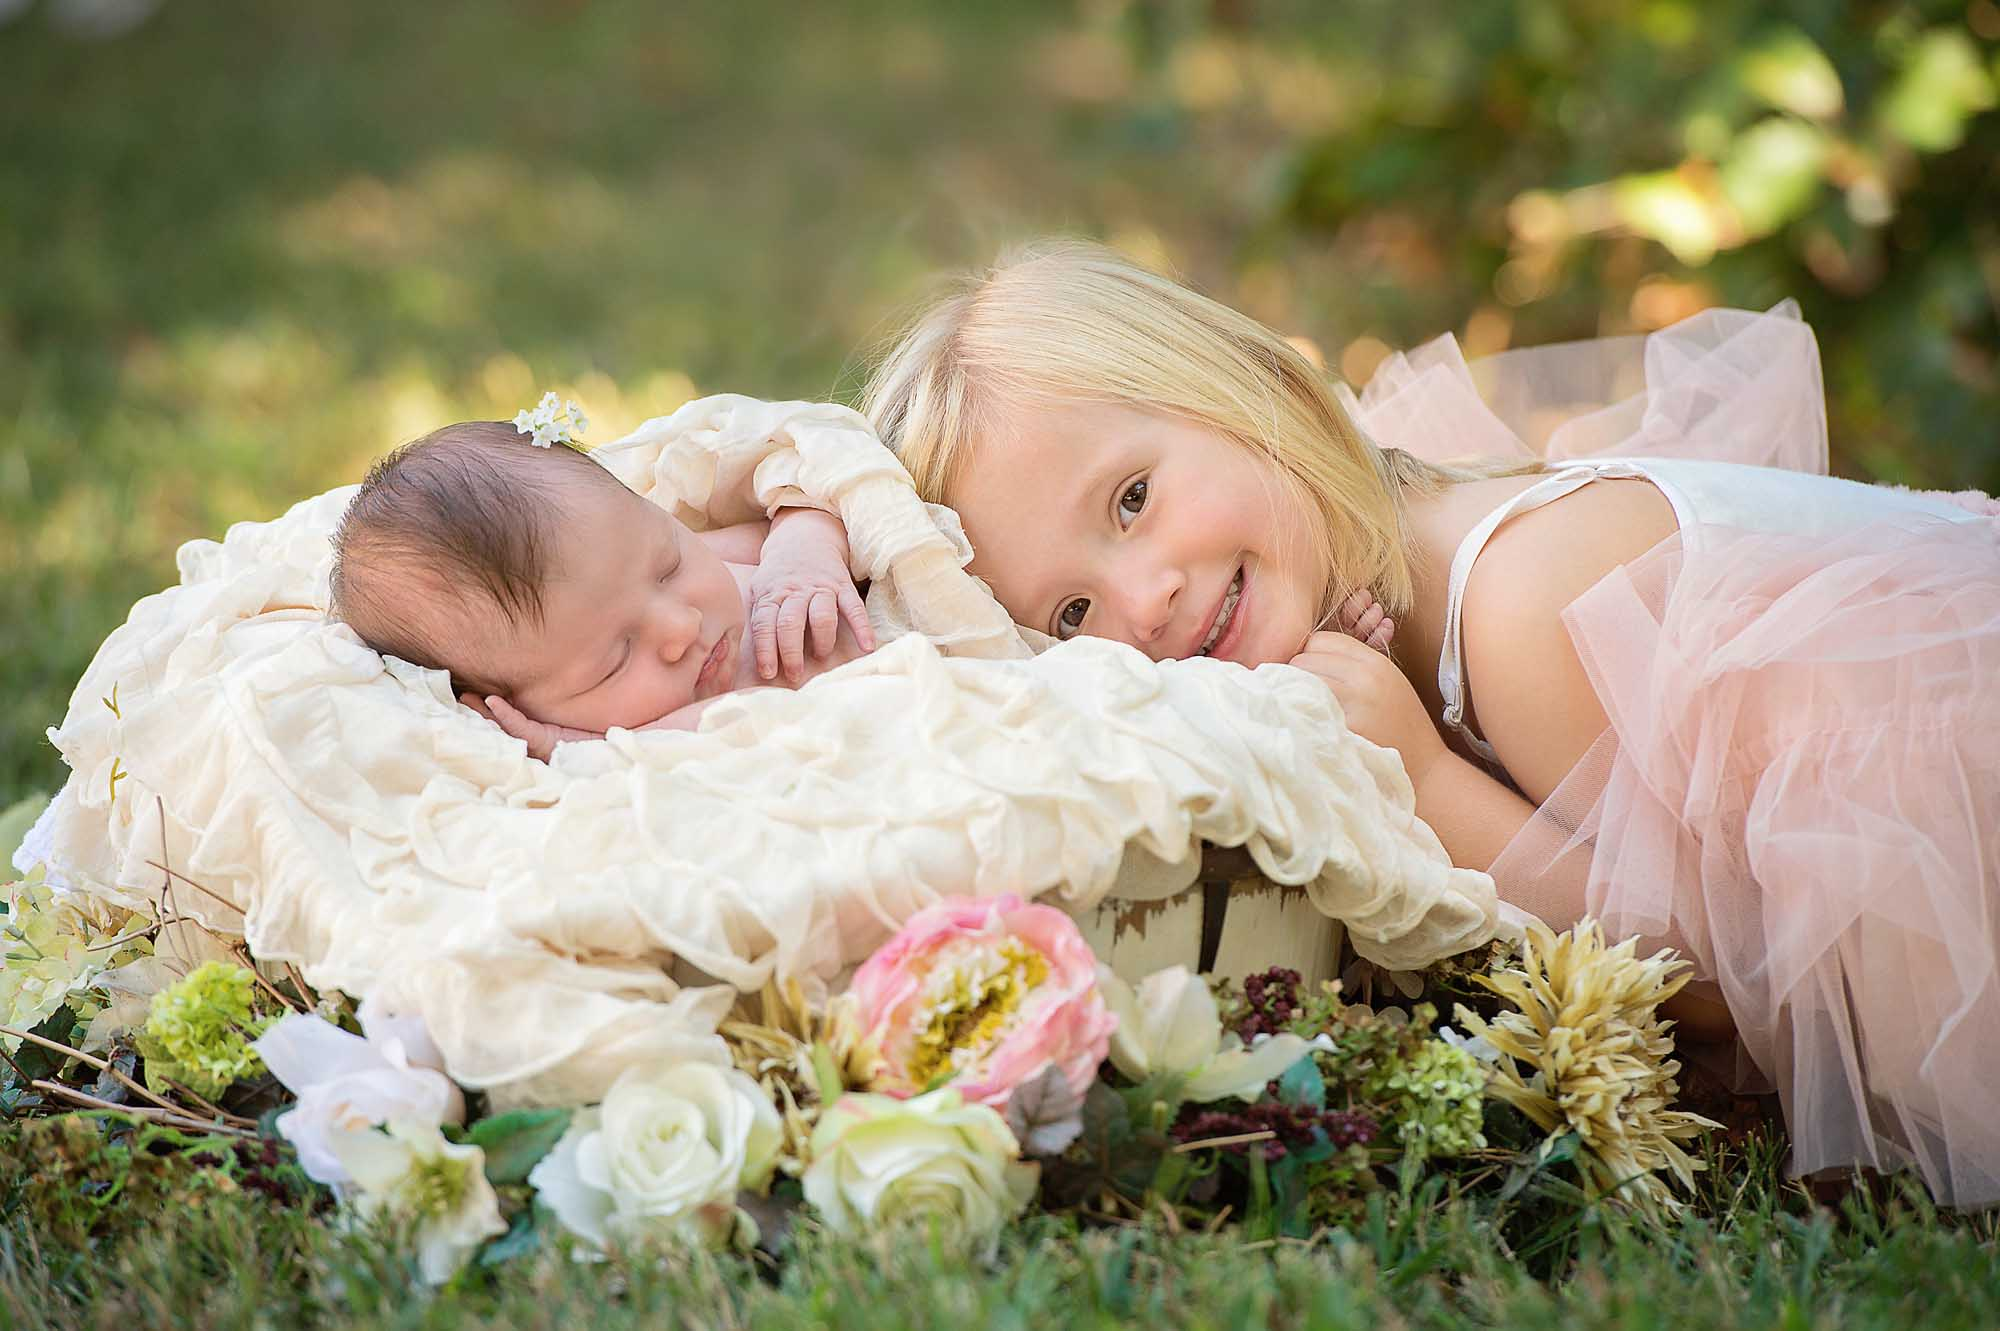 sibling-photography-sneak-peek